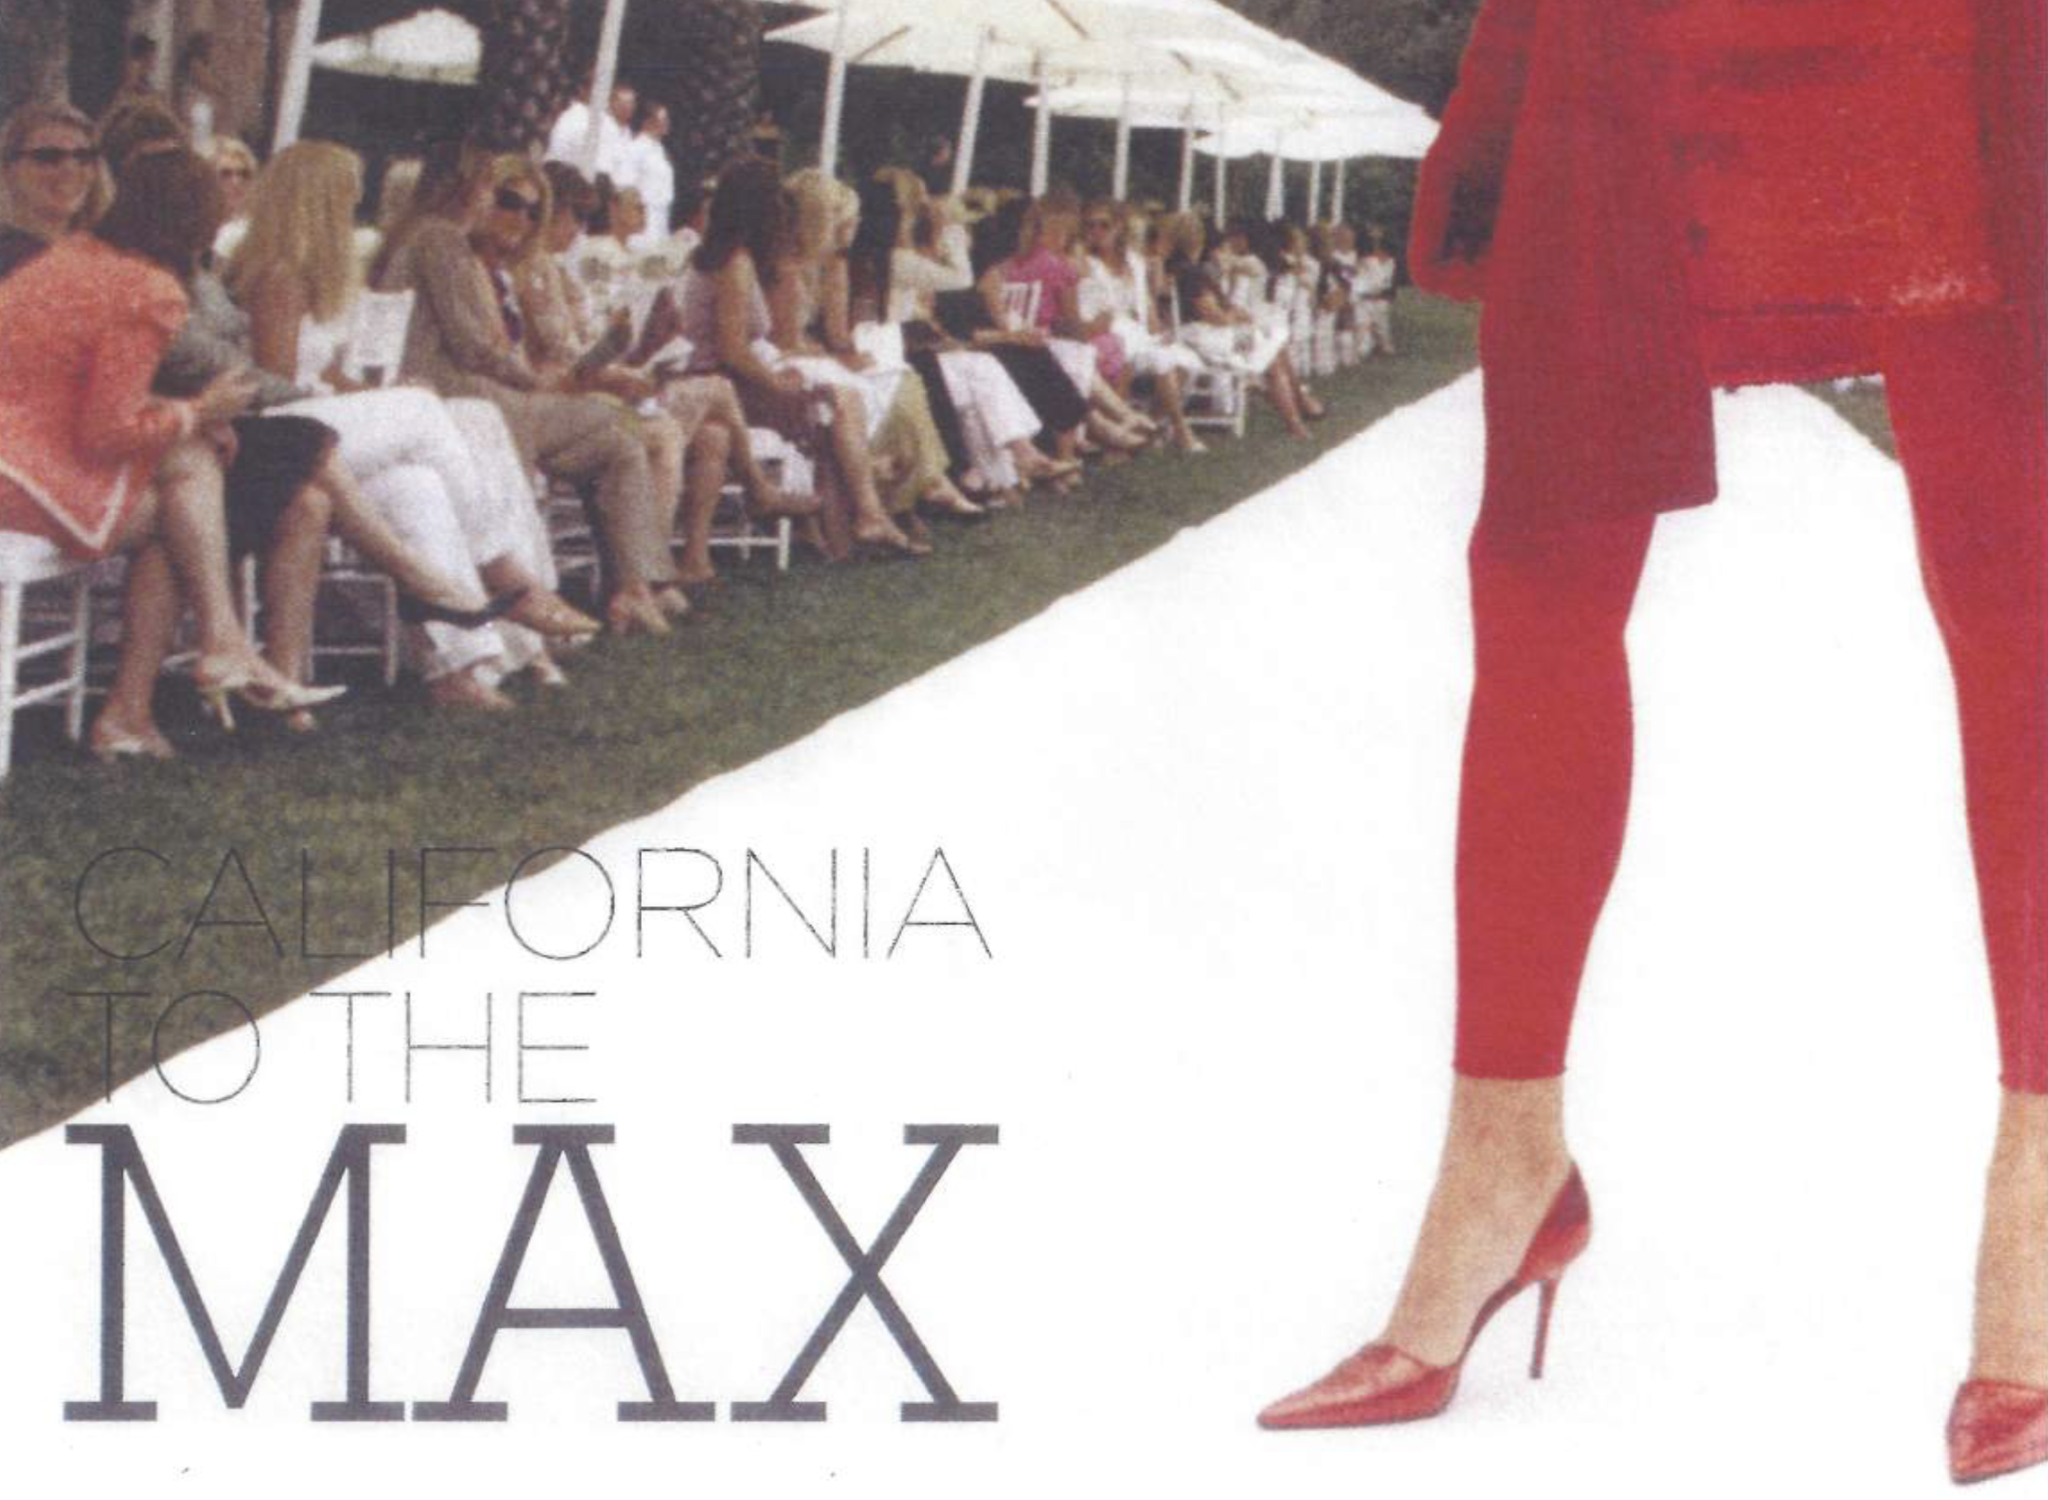 ARTICLE: California To The Max -